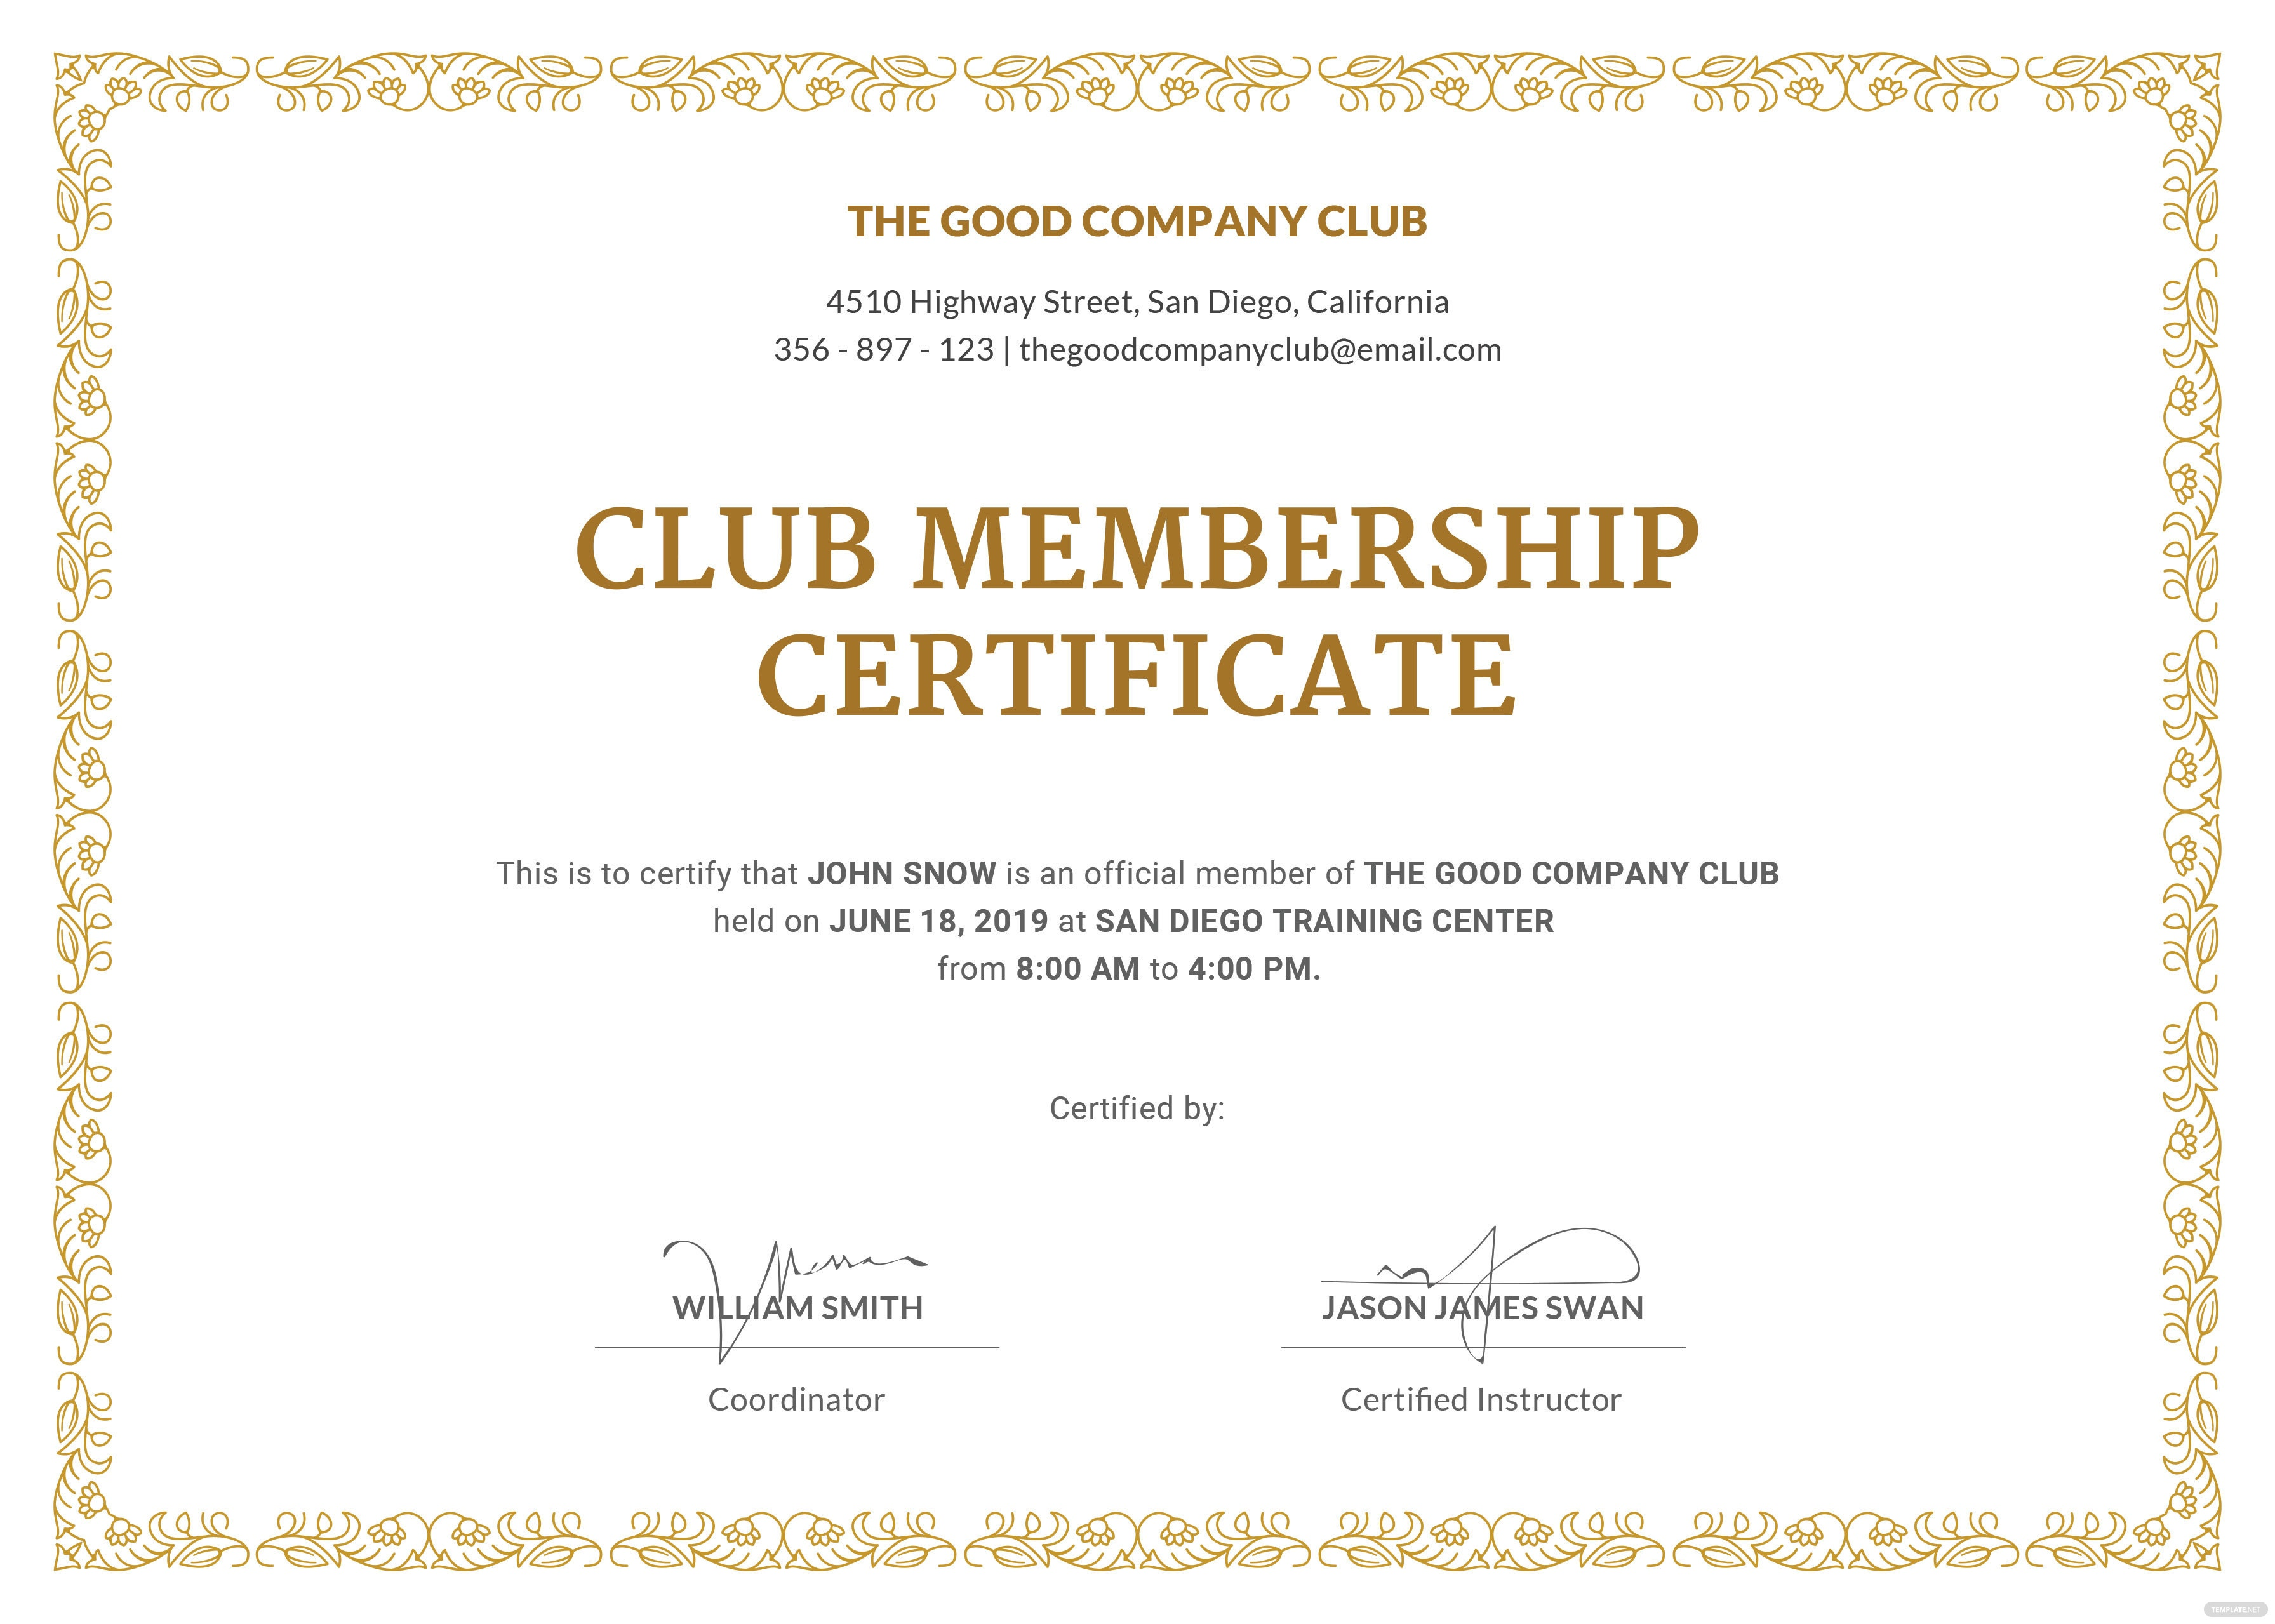 certificate of organization template - free club membership certificate template in adobe